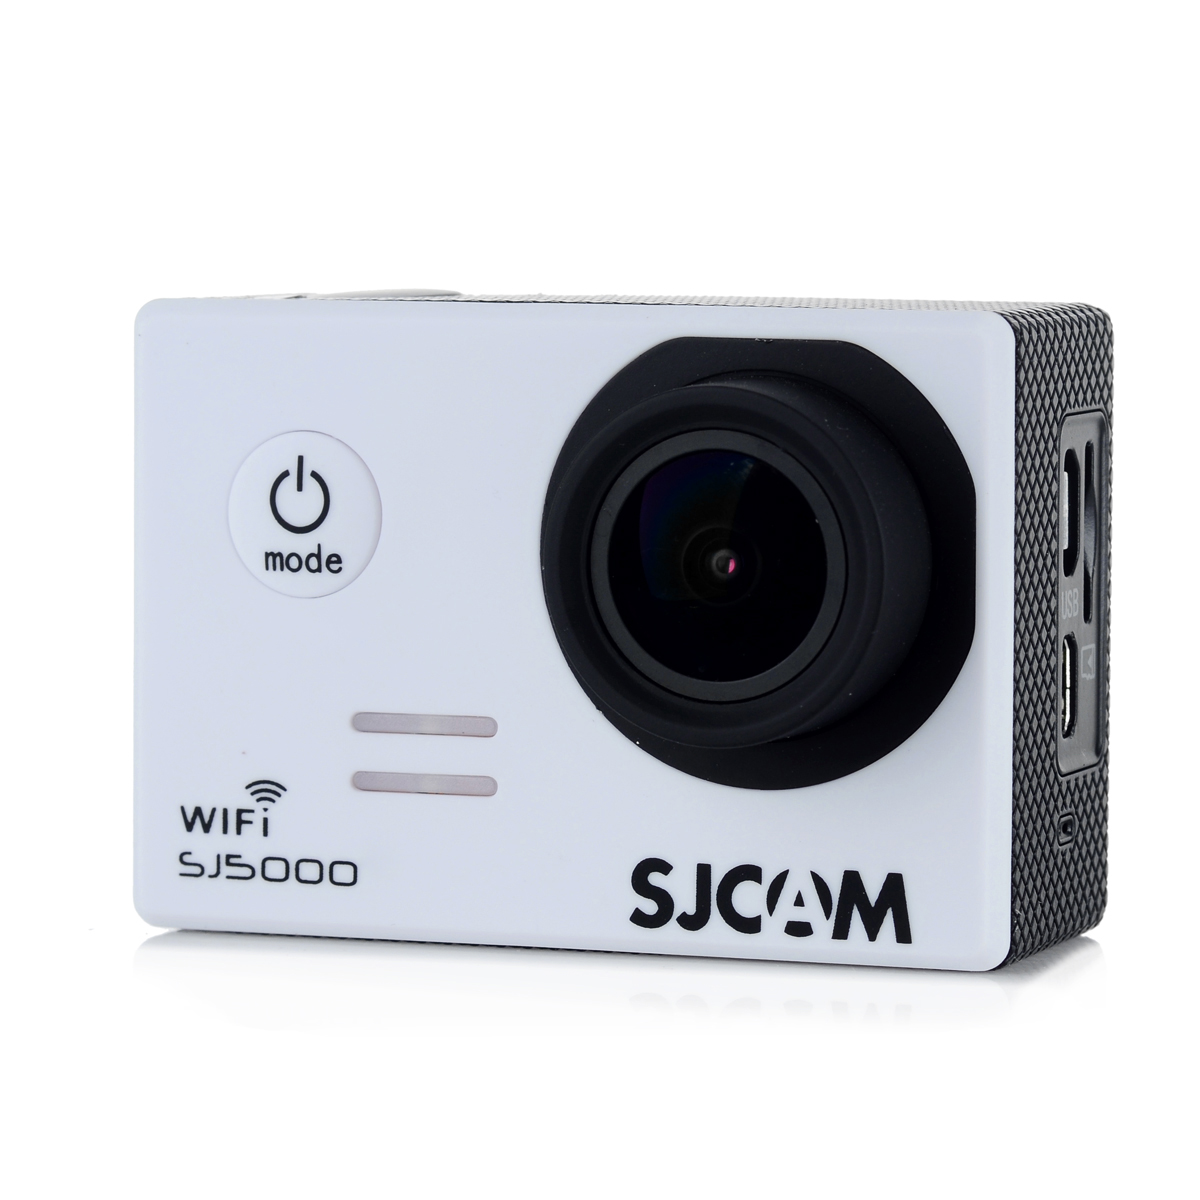 Original SJCAM SJ5000 WiFi Action HD Camera 14MP Novatek 96655 1080P Waterproof White